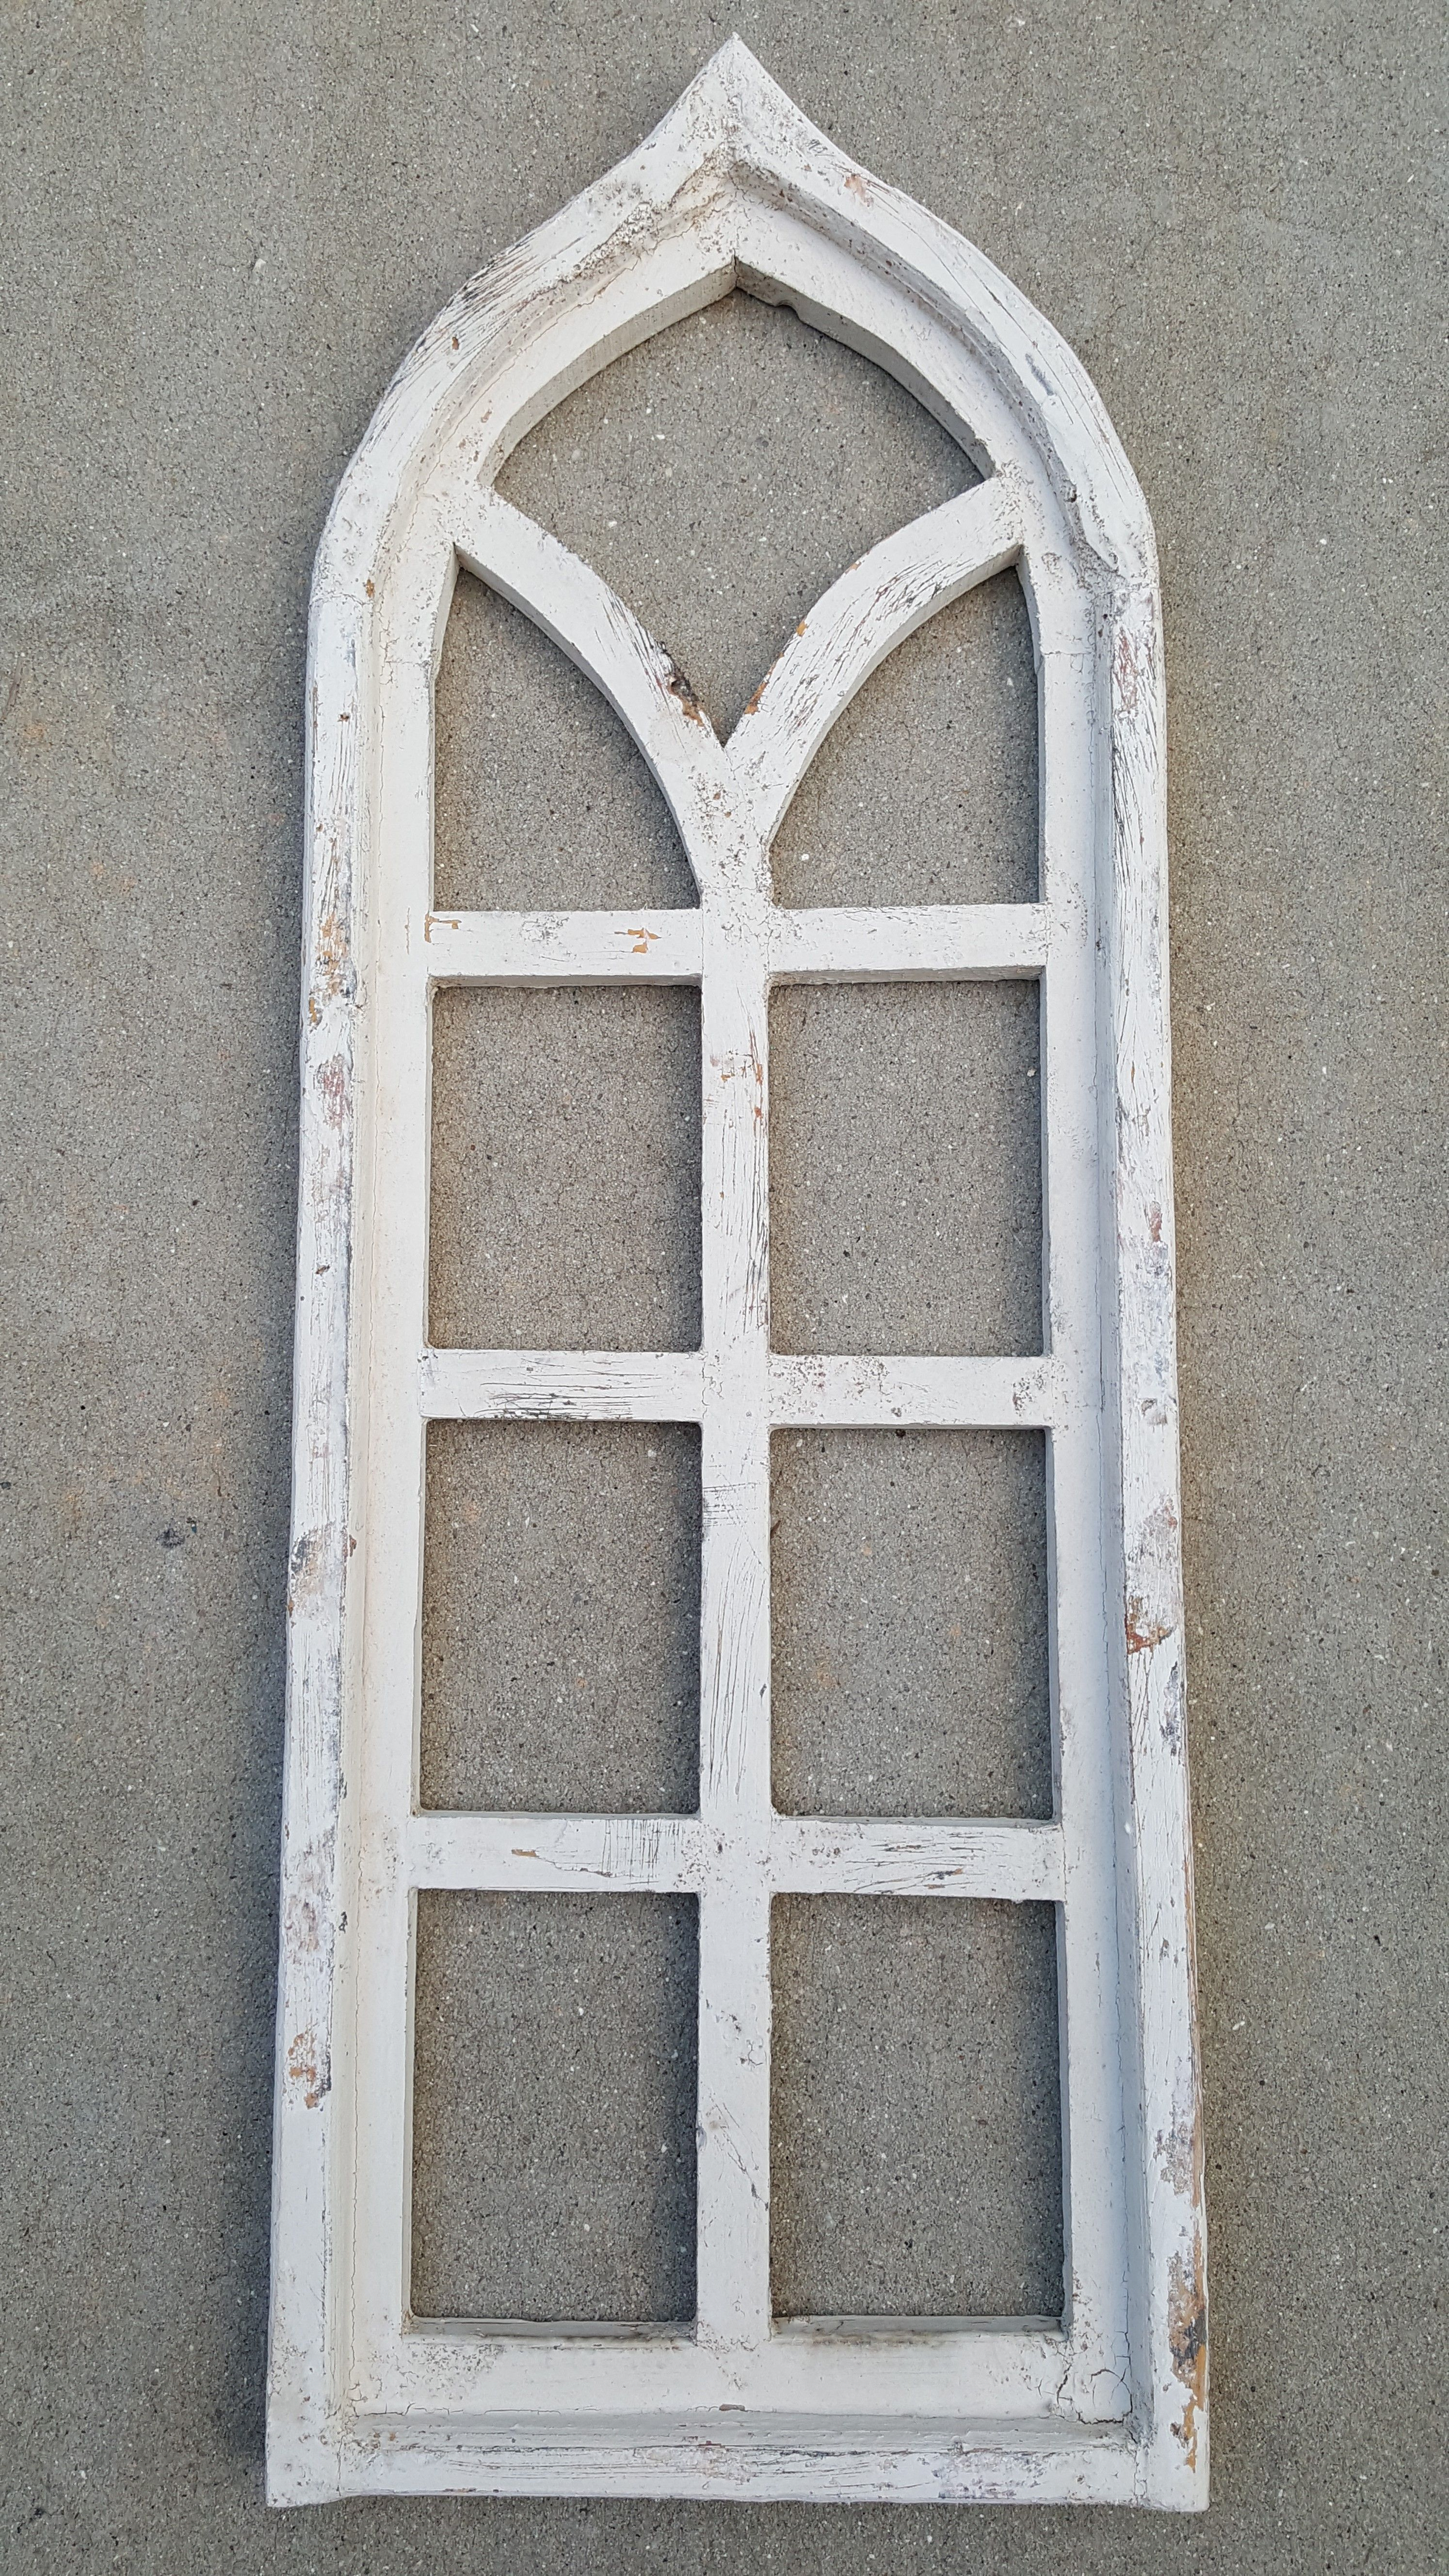 Shop Our Online Store For More White Wood Window Arches Like This